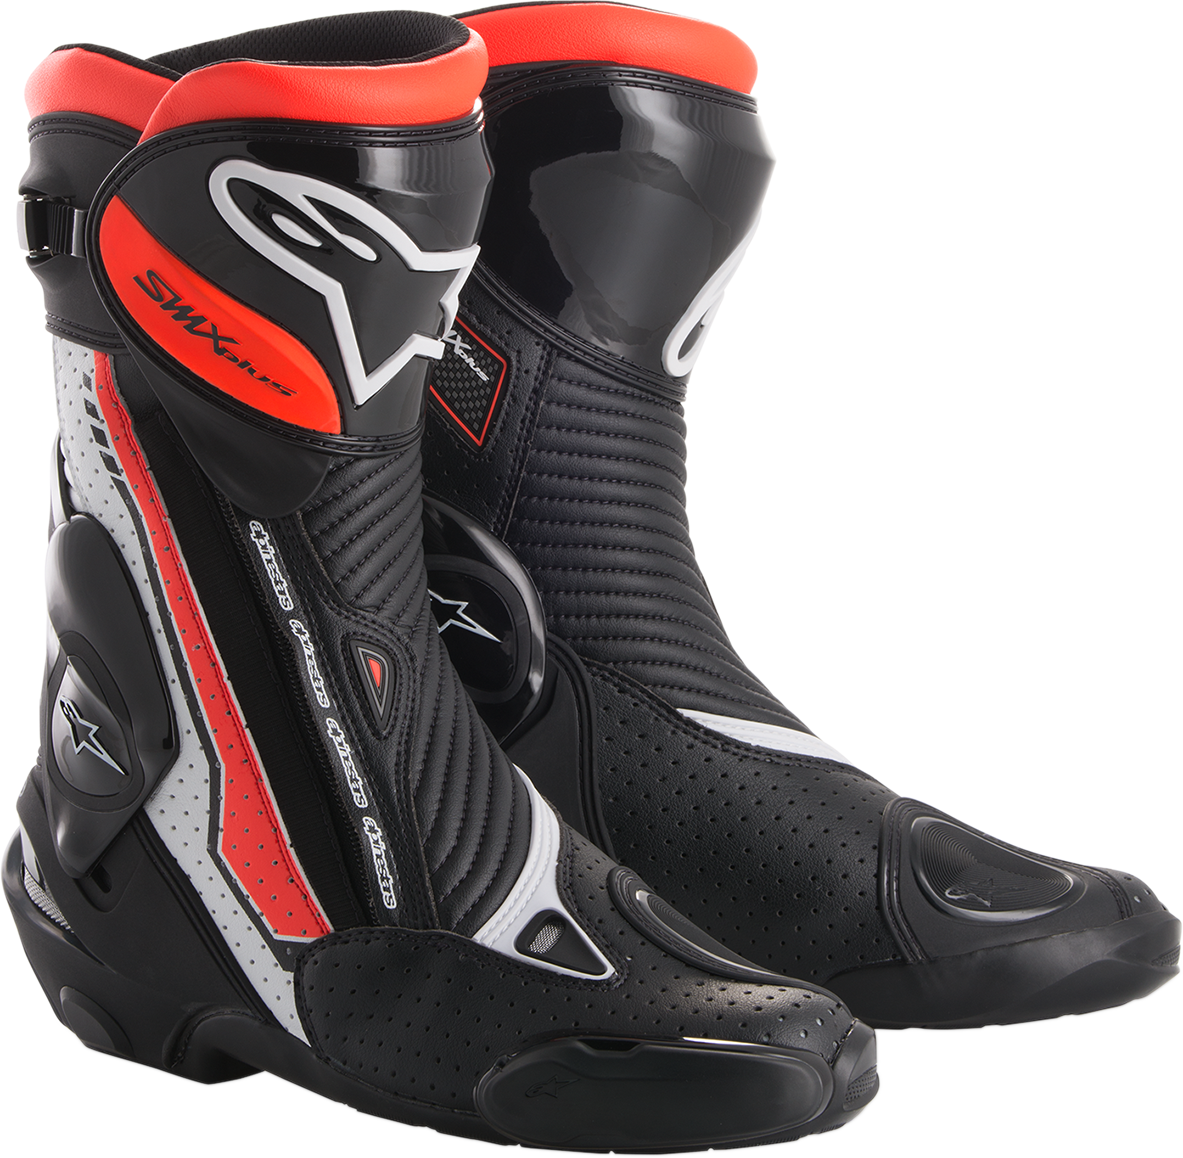 Mens Alpinestars White Black Red SMX Plus Motorcycle Riding Street Racing Boots